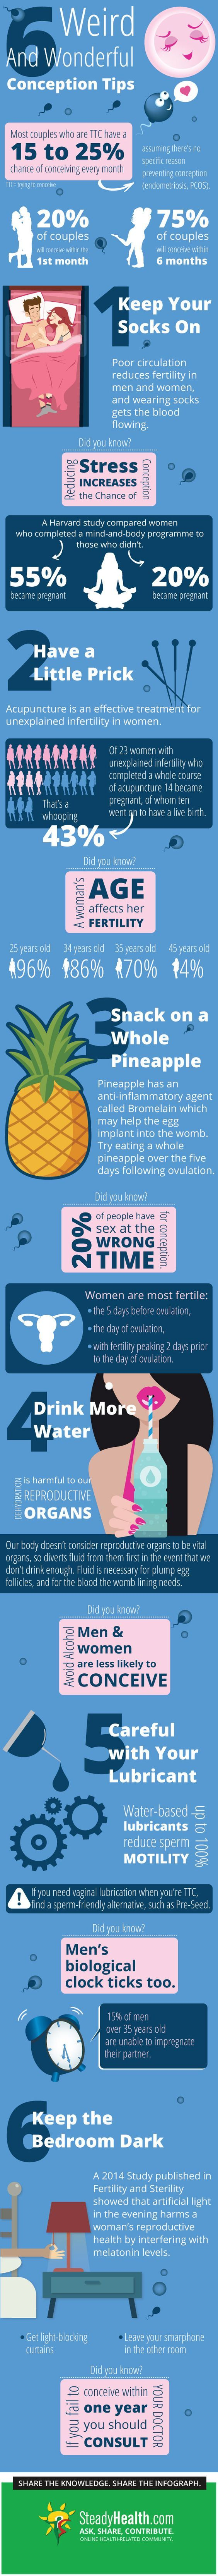 Interesting lesser-known ideas for couples trying to conceive! Have you tried any of these? #ttc